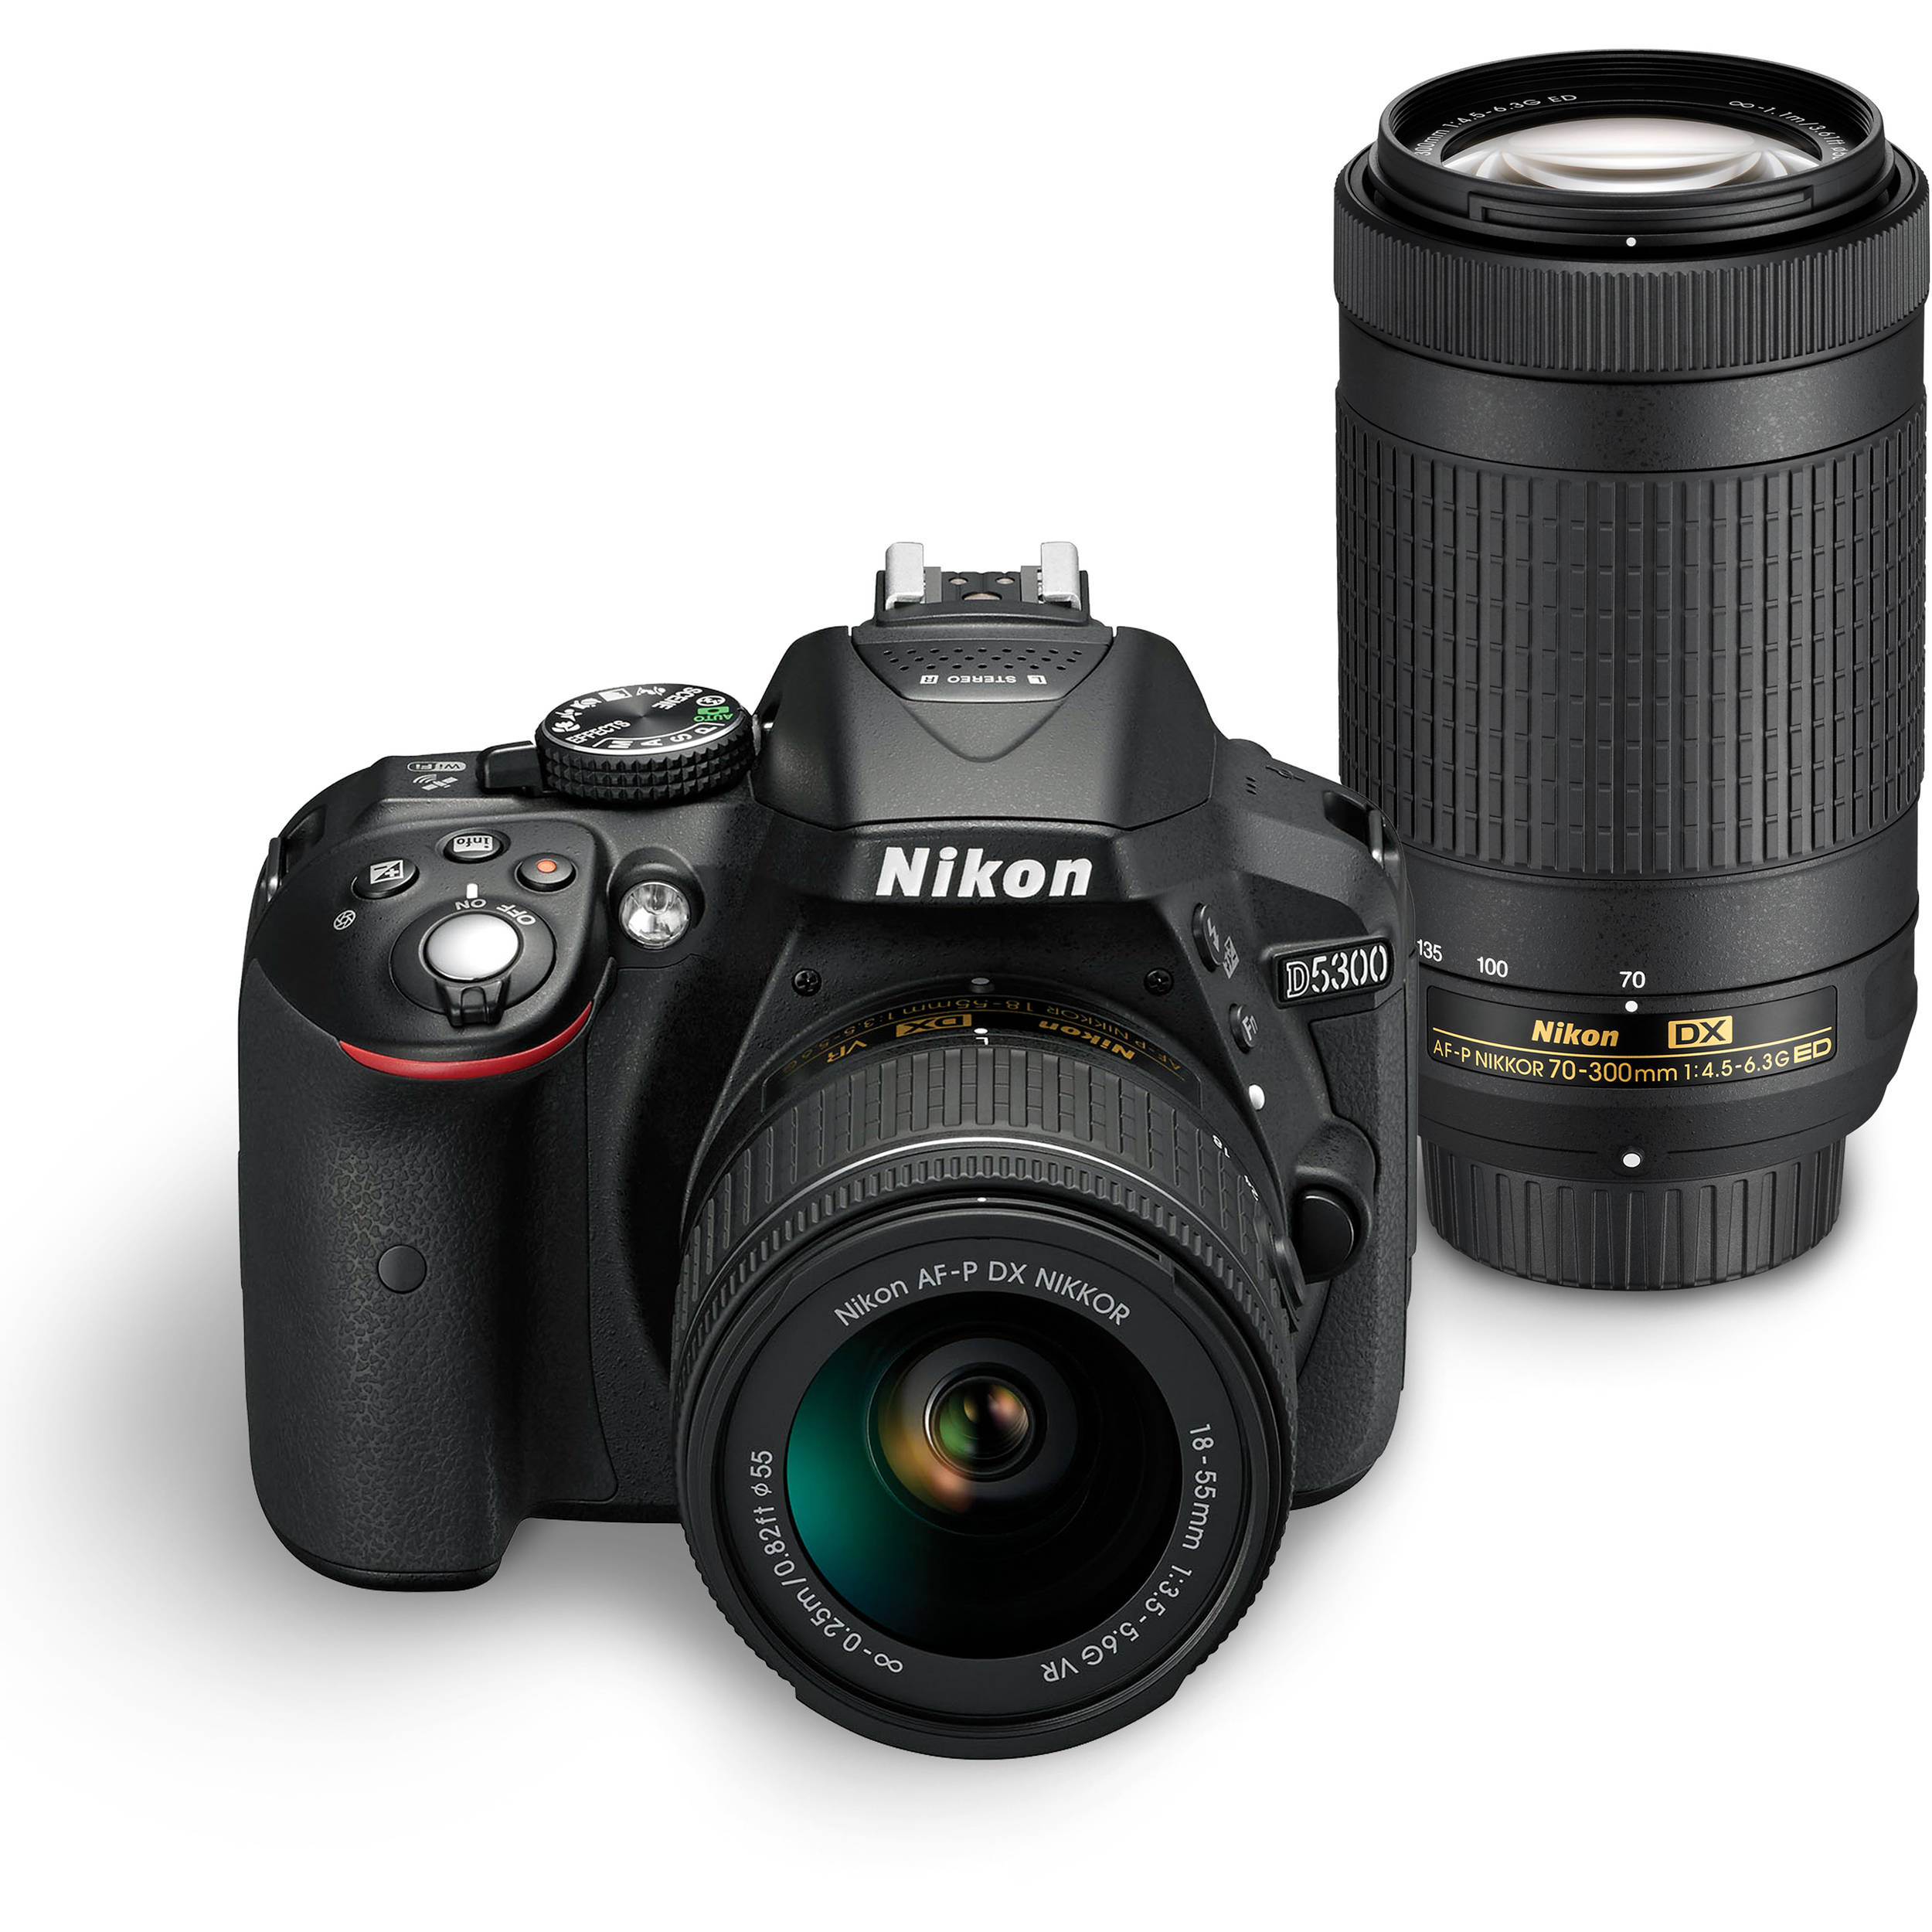 Nikon D5300 DSLR Camera Dual Lens Kit 1579 B&H Photo Video